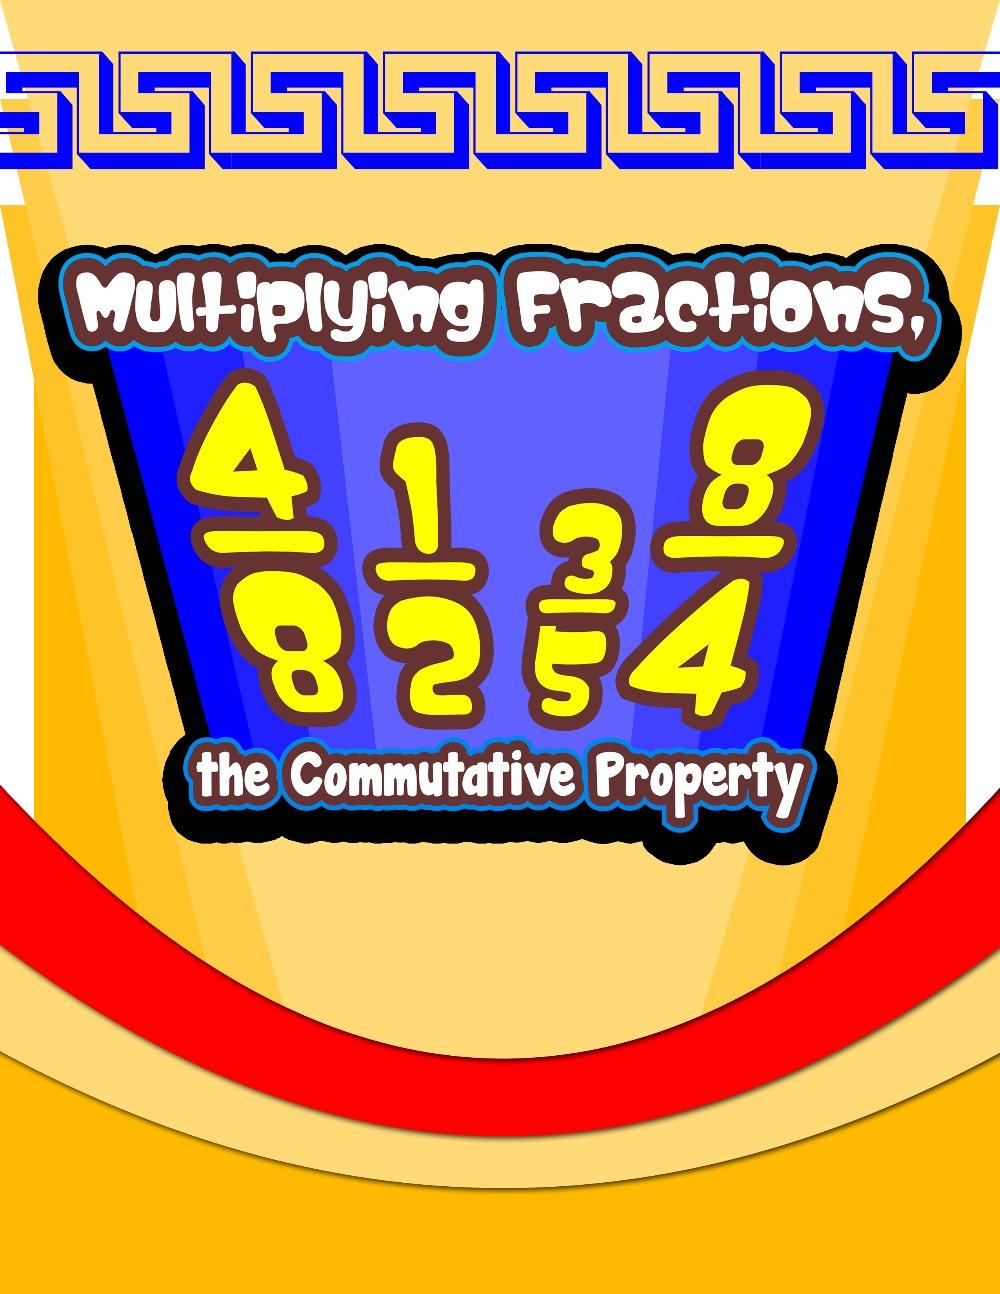 multiplying fractions, the commutative property